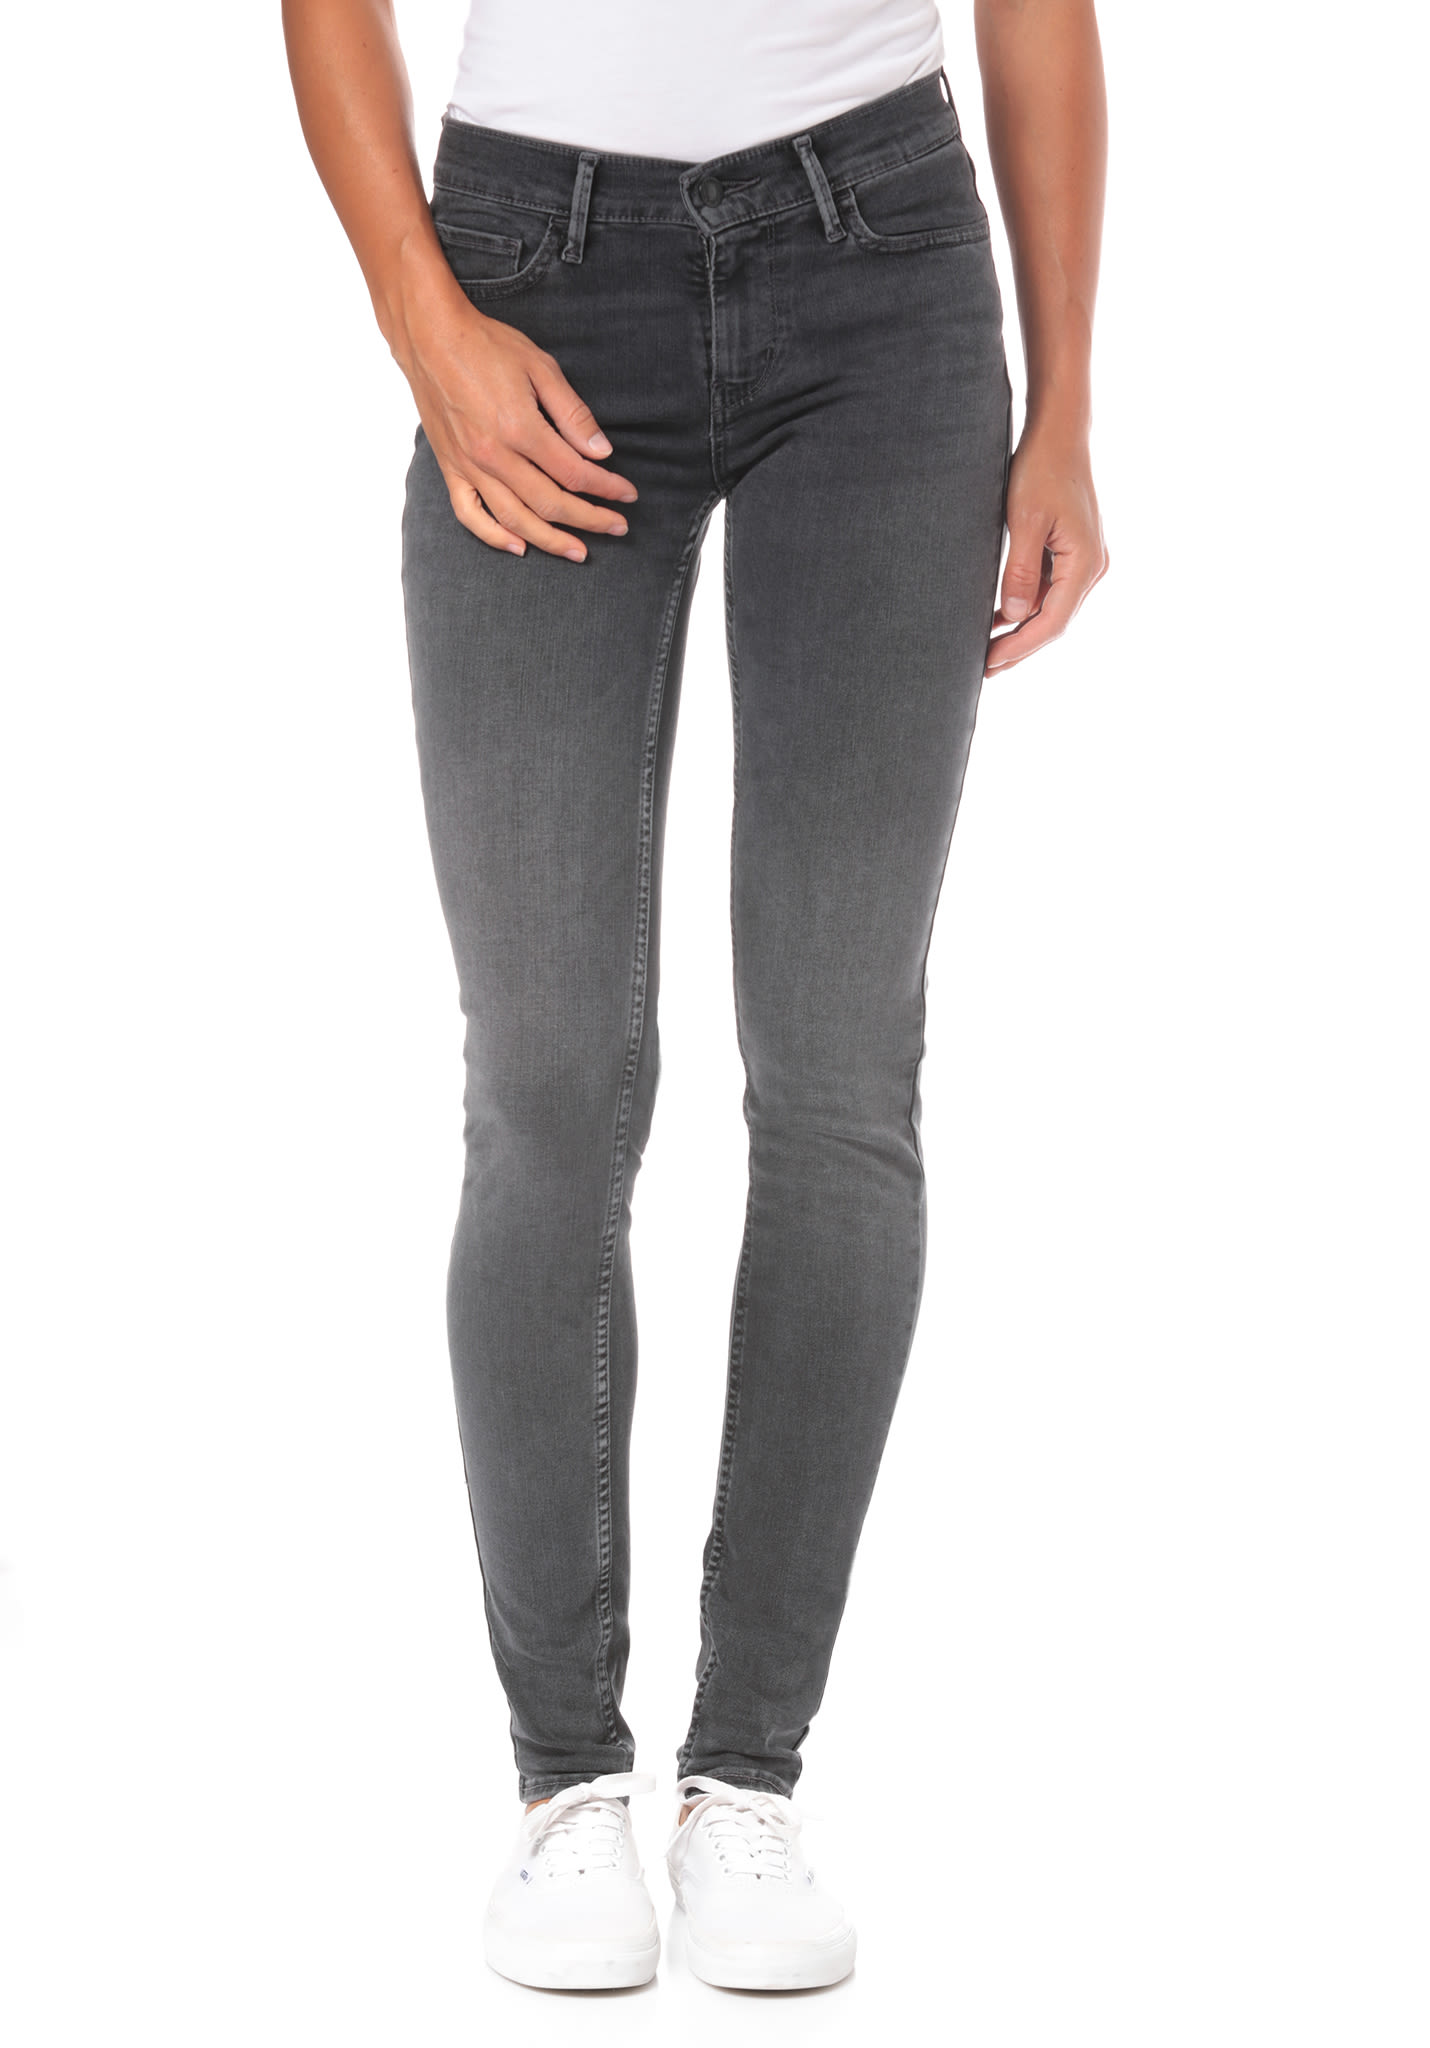 ca73de664c478 Levi's Innovation Super Skinny 710 - Jean pour Femme - Gris - Planet Sports